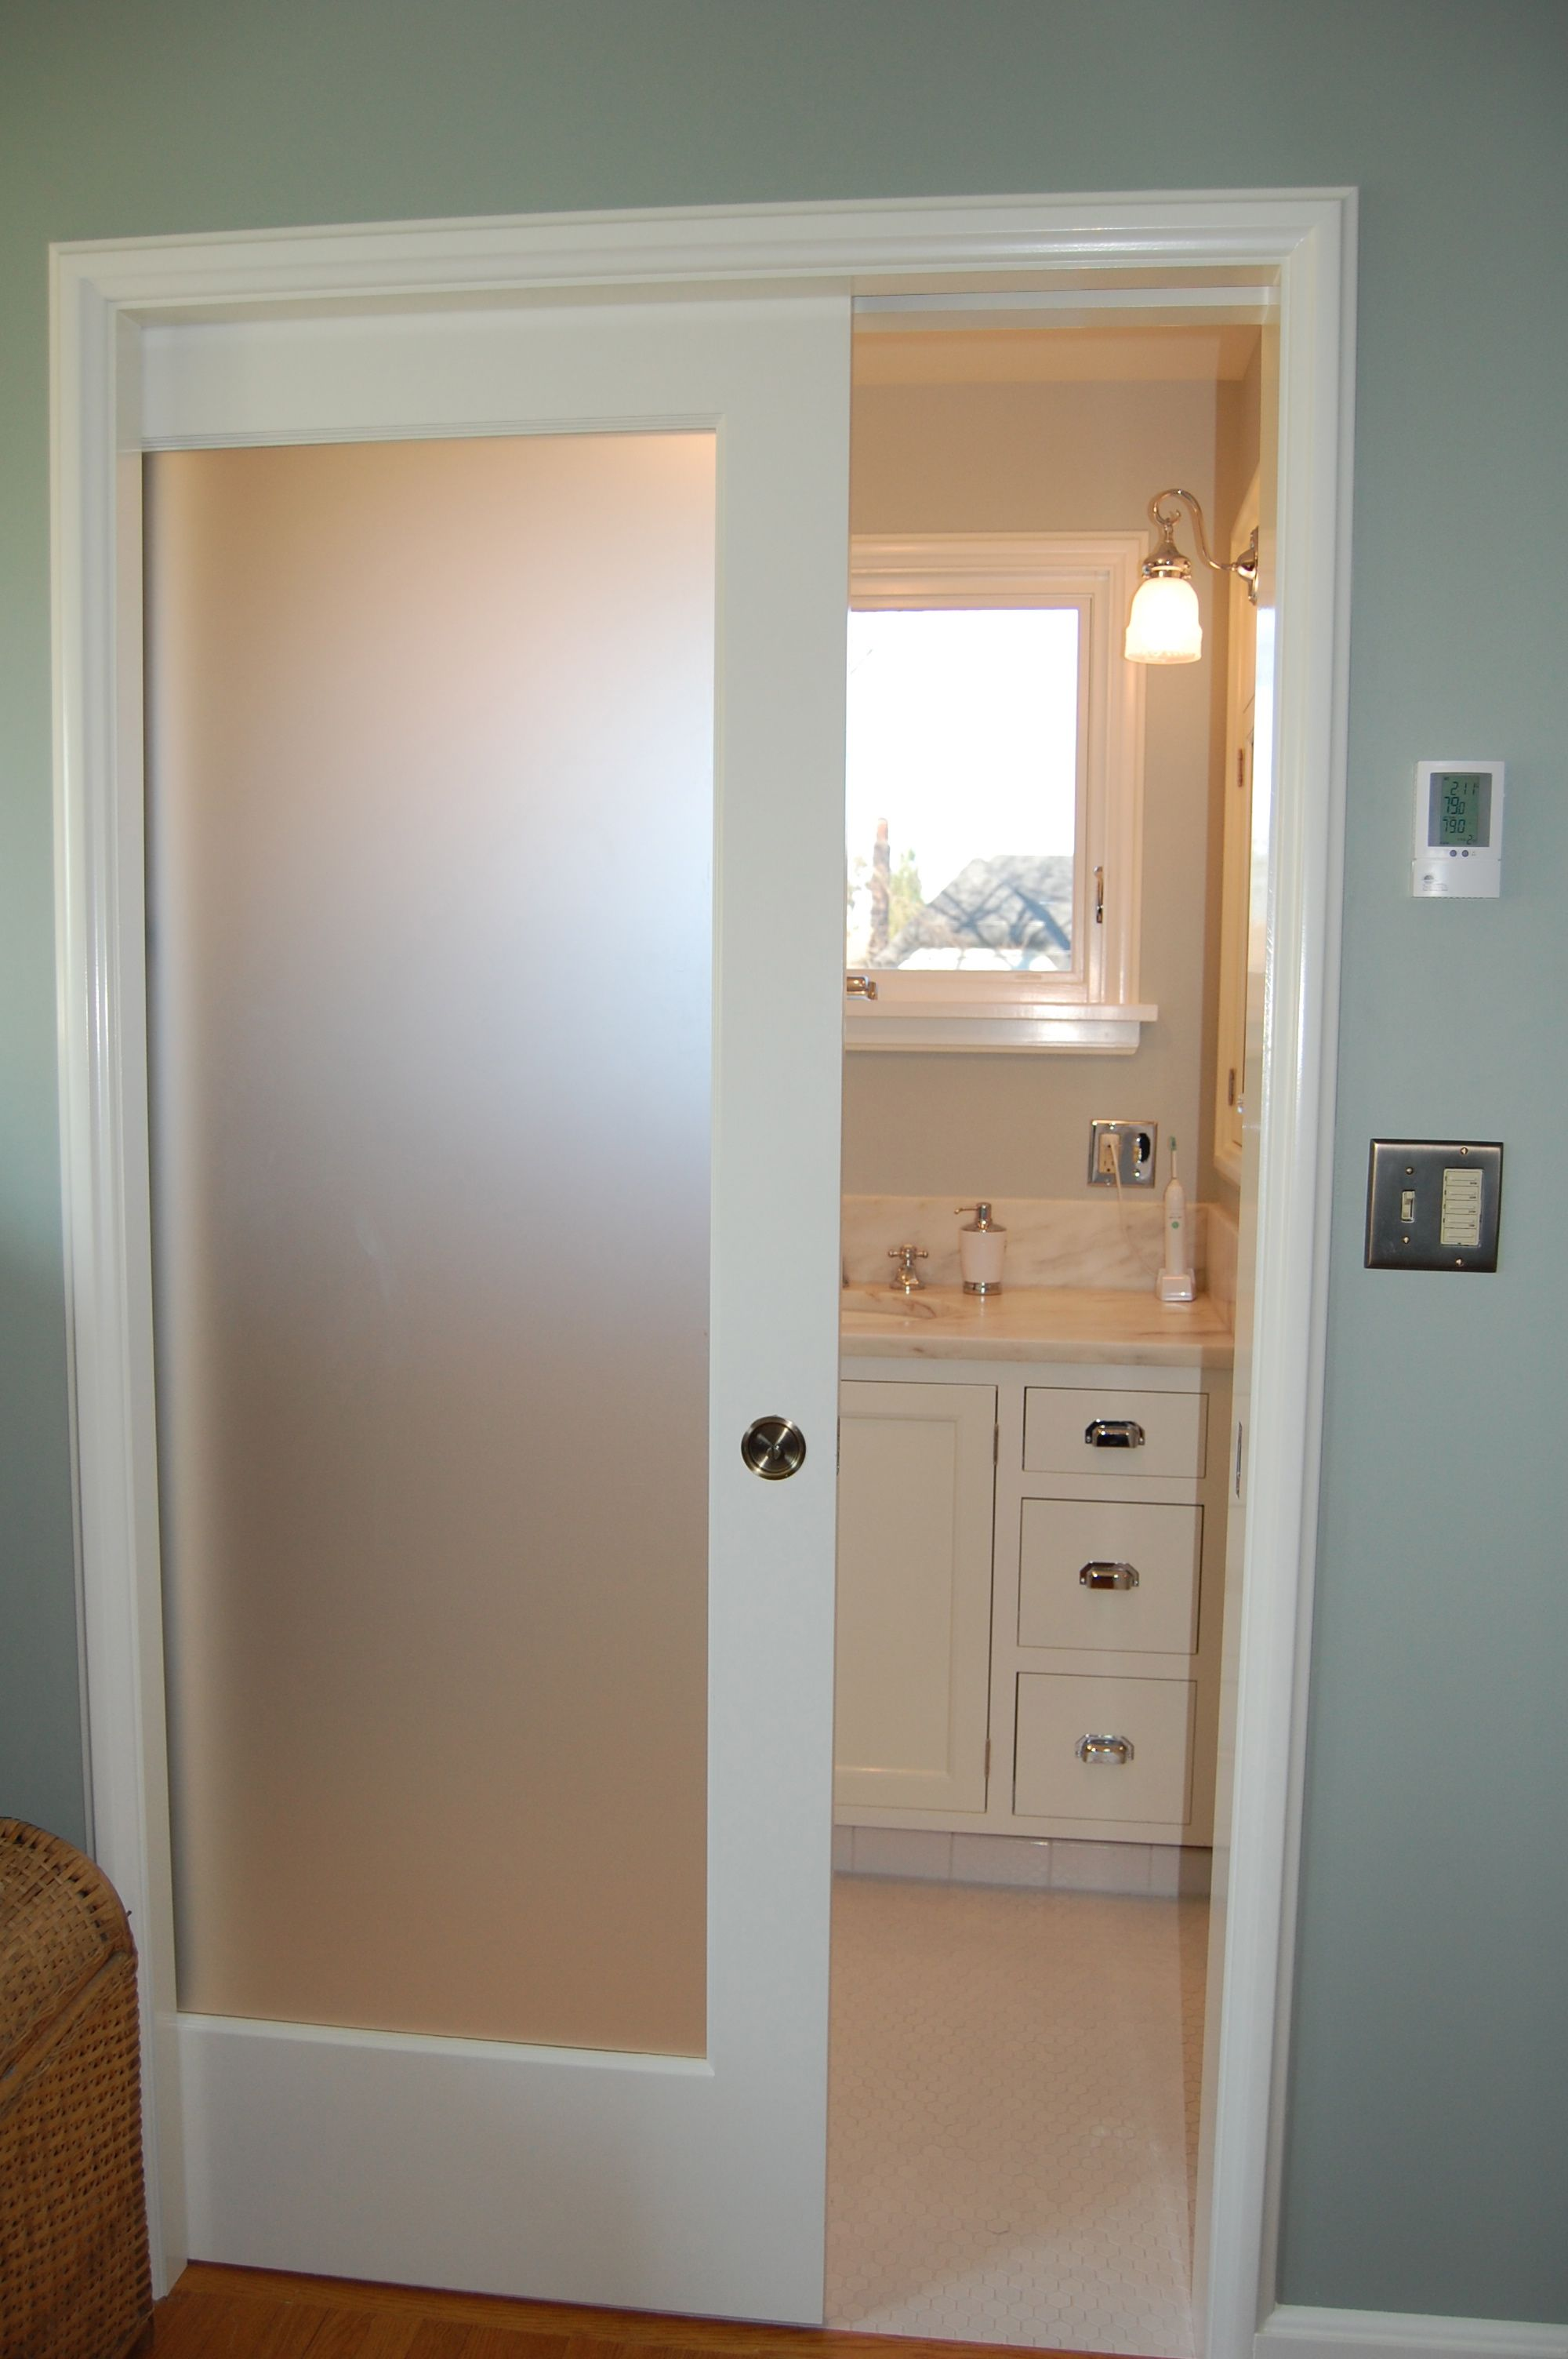 Bathroom pocket doors -